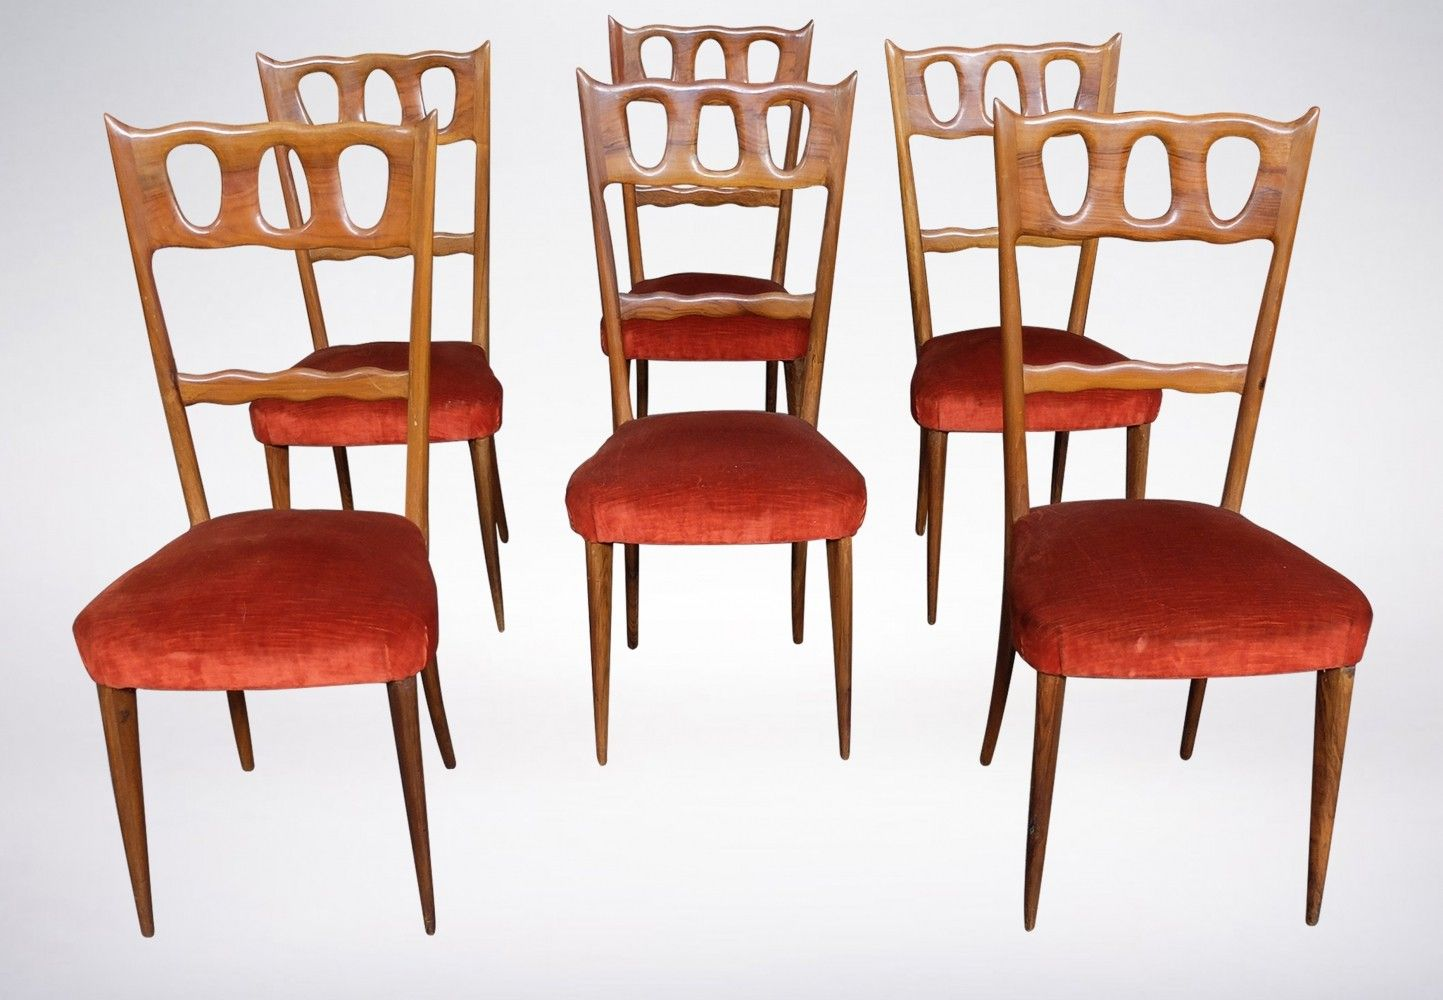 Set of Six Elegant Walnut & Red Velvet Chairs by Paolo Buffa